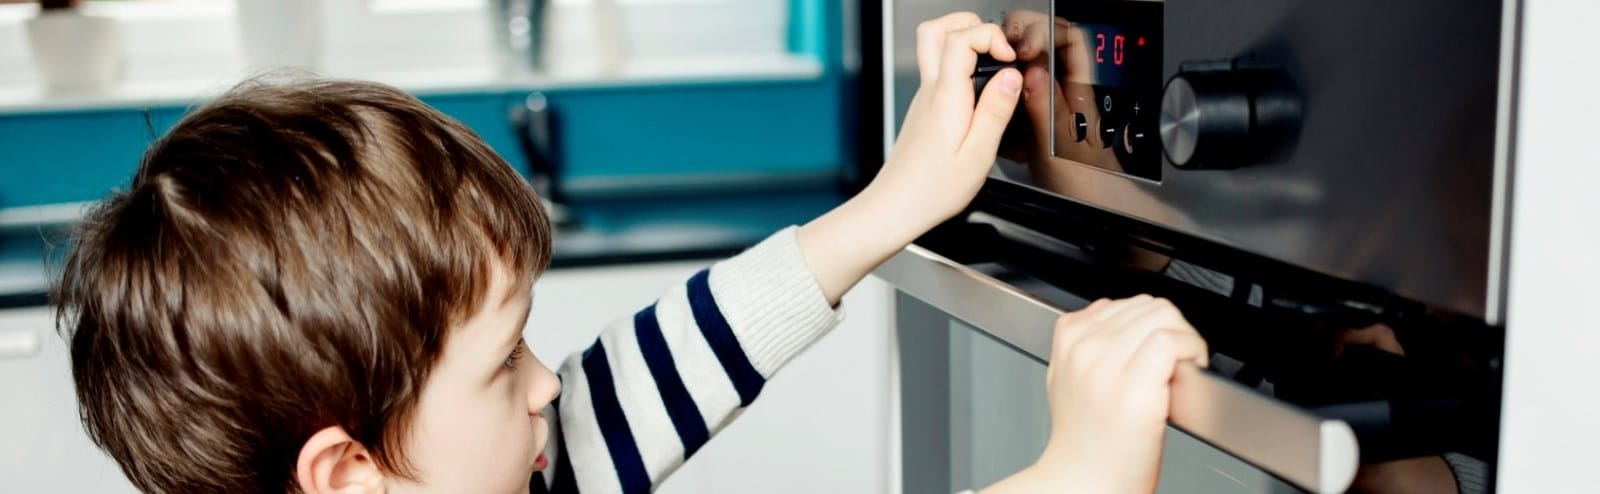 Child Turning On Stove